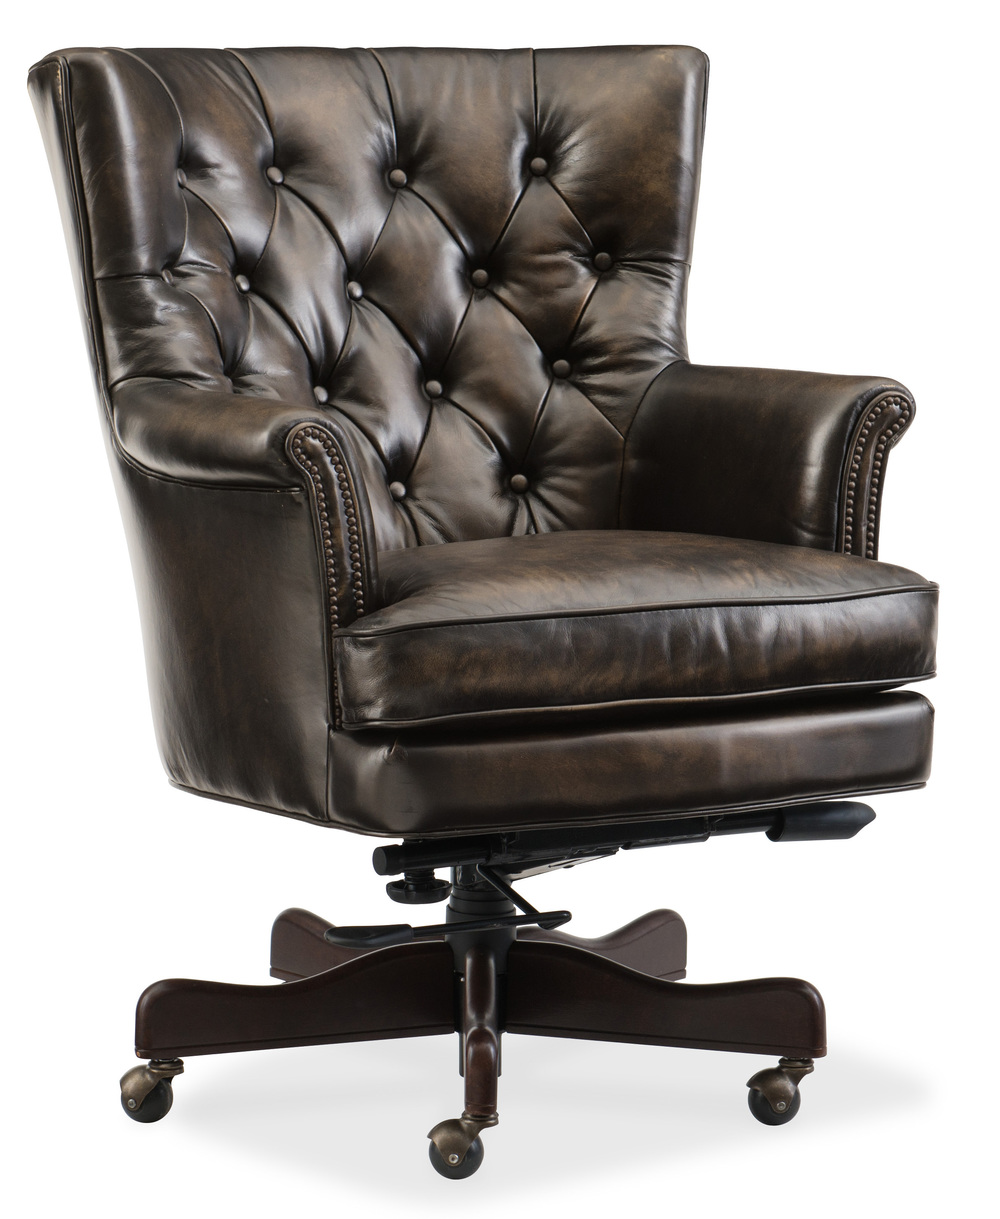 Hooker Furniture - Theodore Home Office Chair